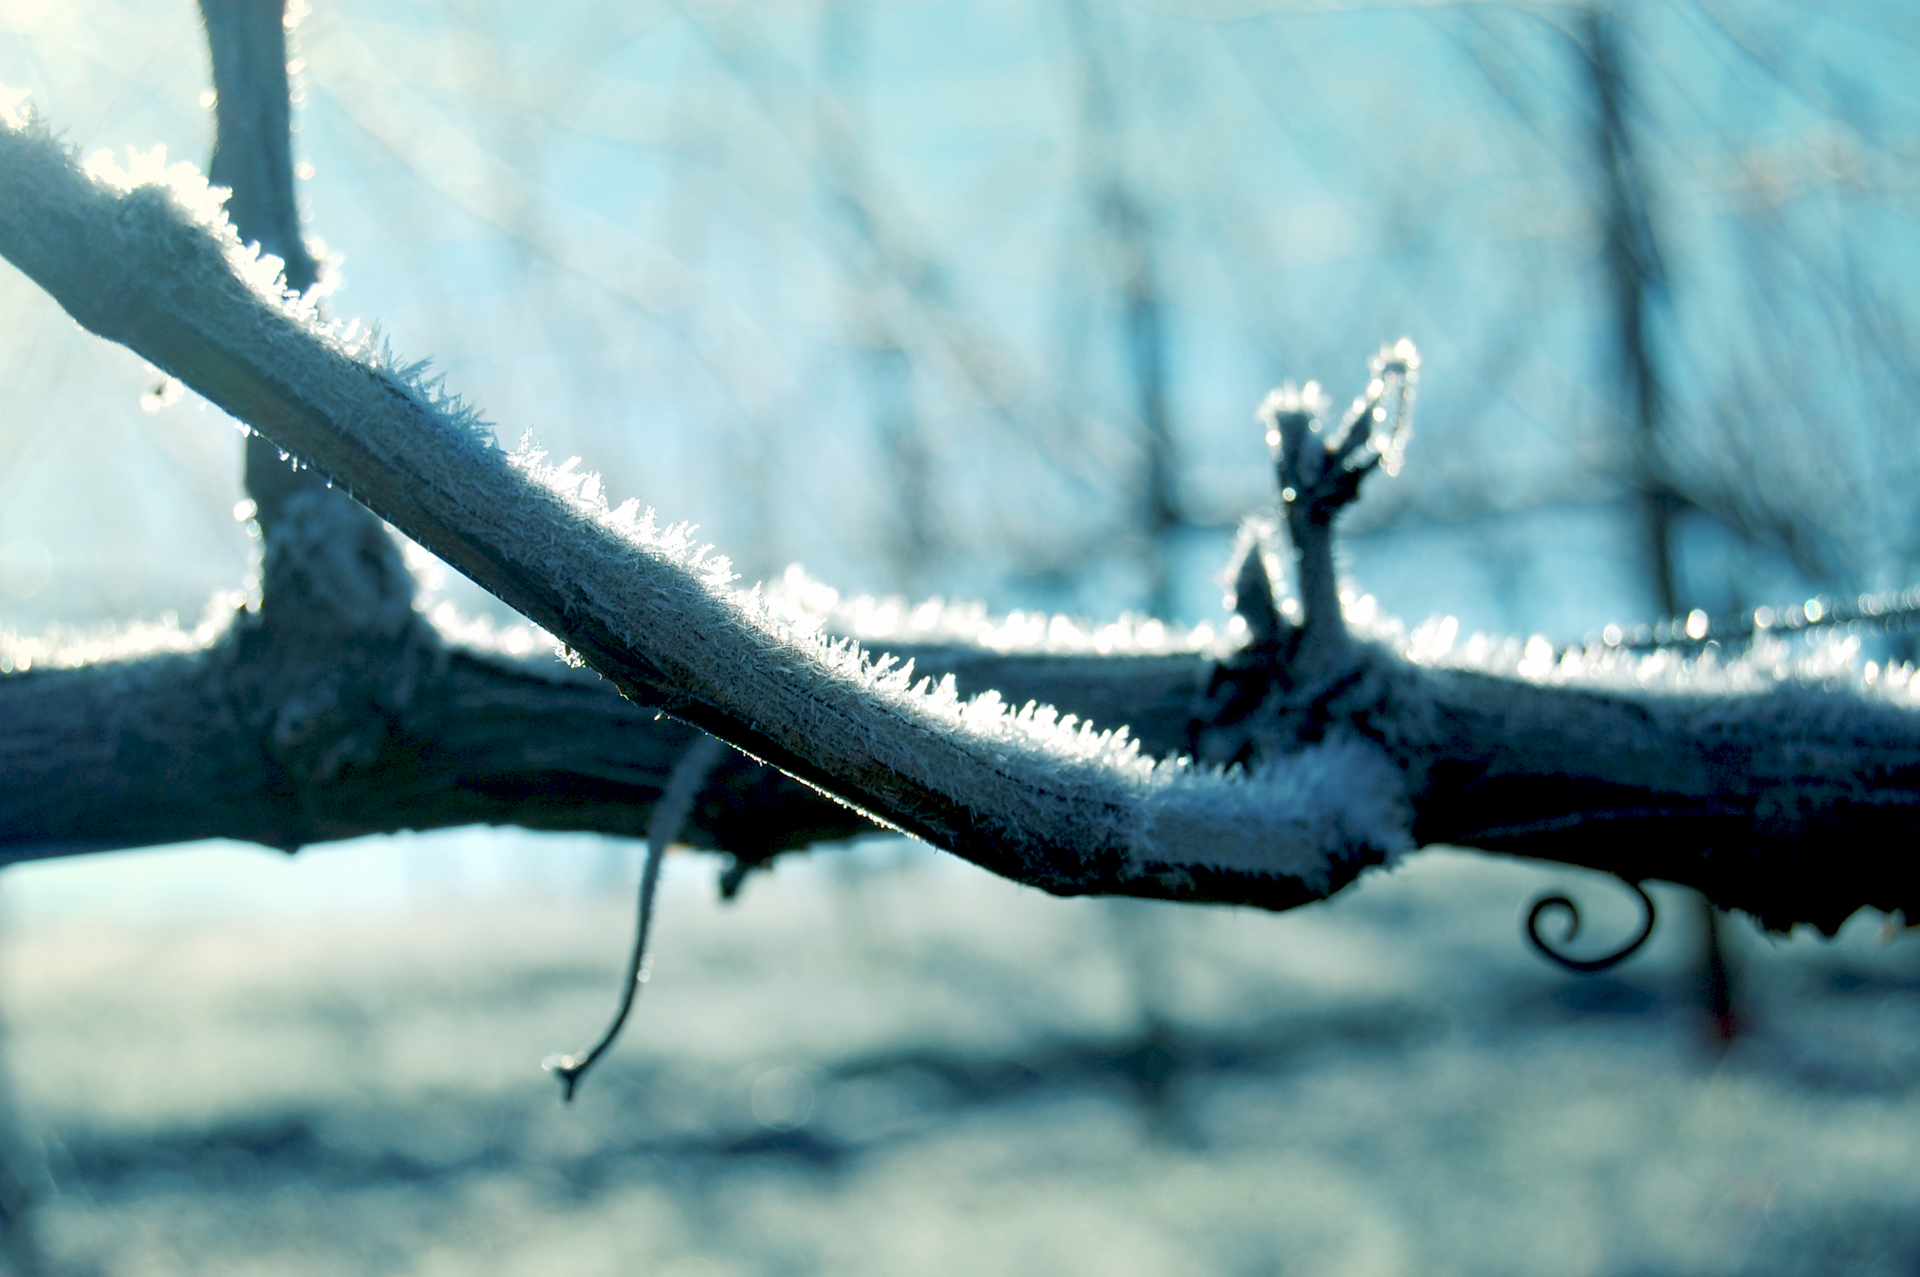 Frost on the vines, winter 2013